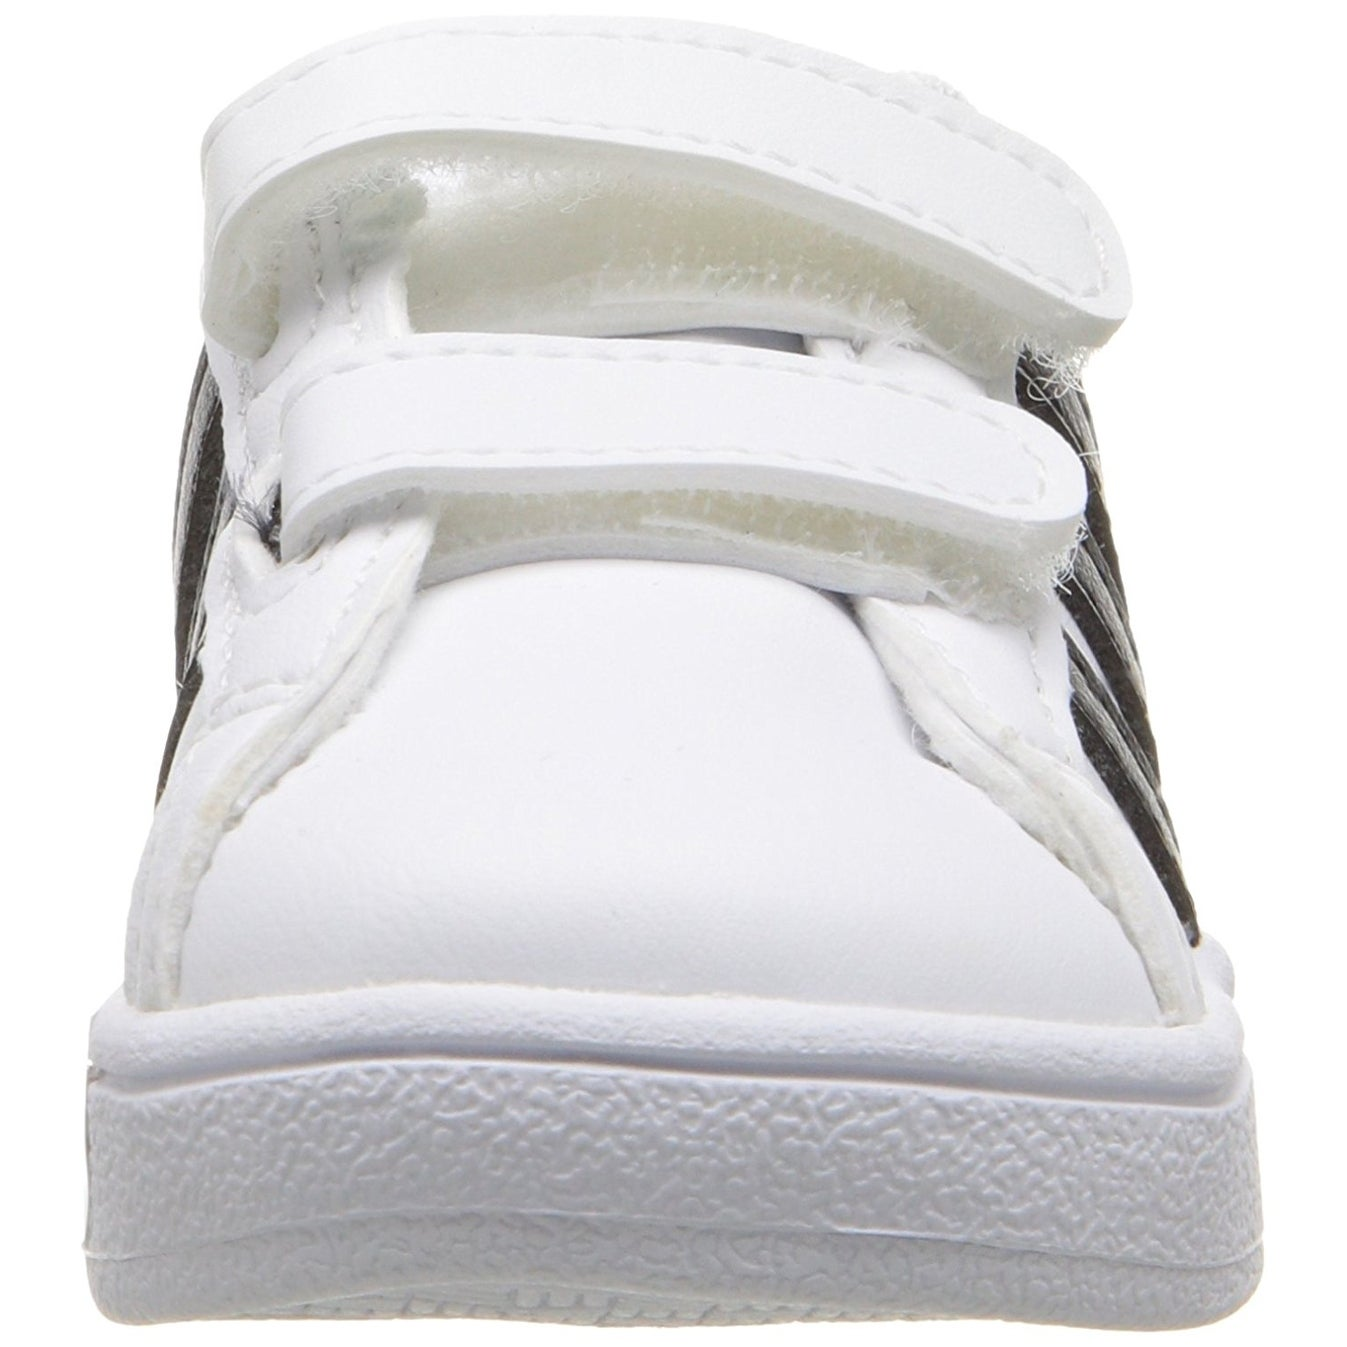 watch 8c5ae 6e850 Shop adidas Neo Kids Baseline CMF Inf Sneaker - Free Shipping On Orders  Over 45 - Overstock - 22254025